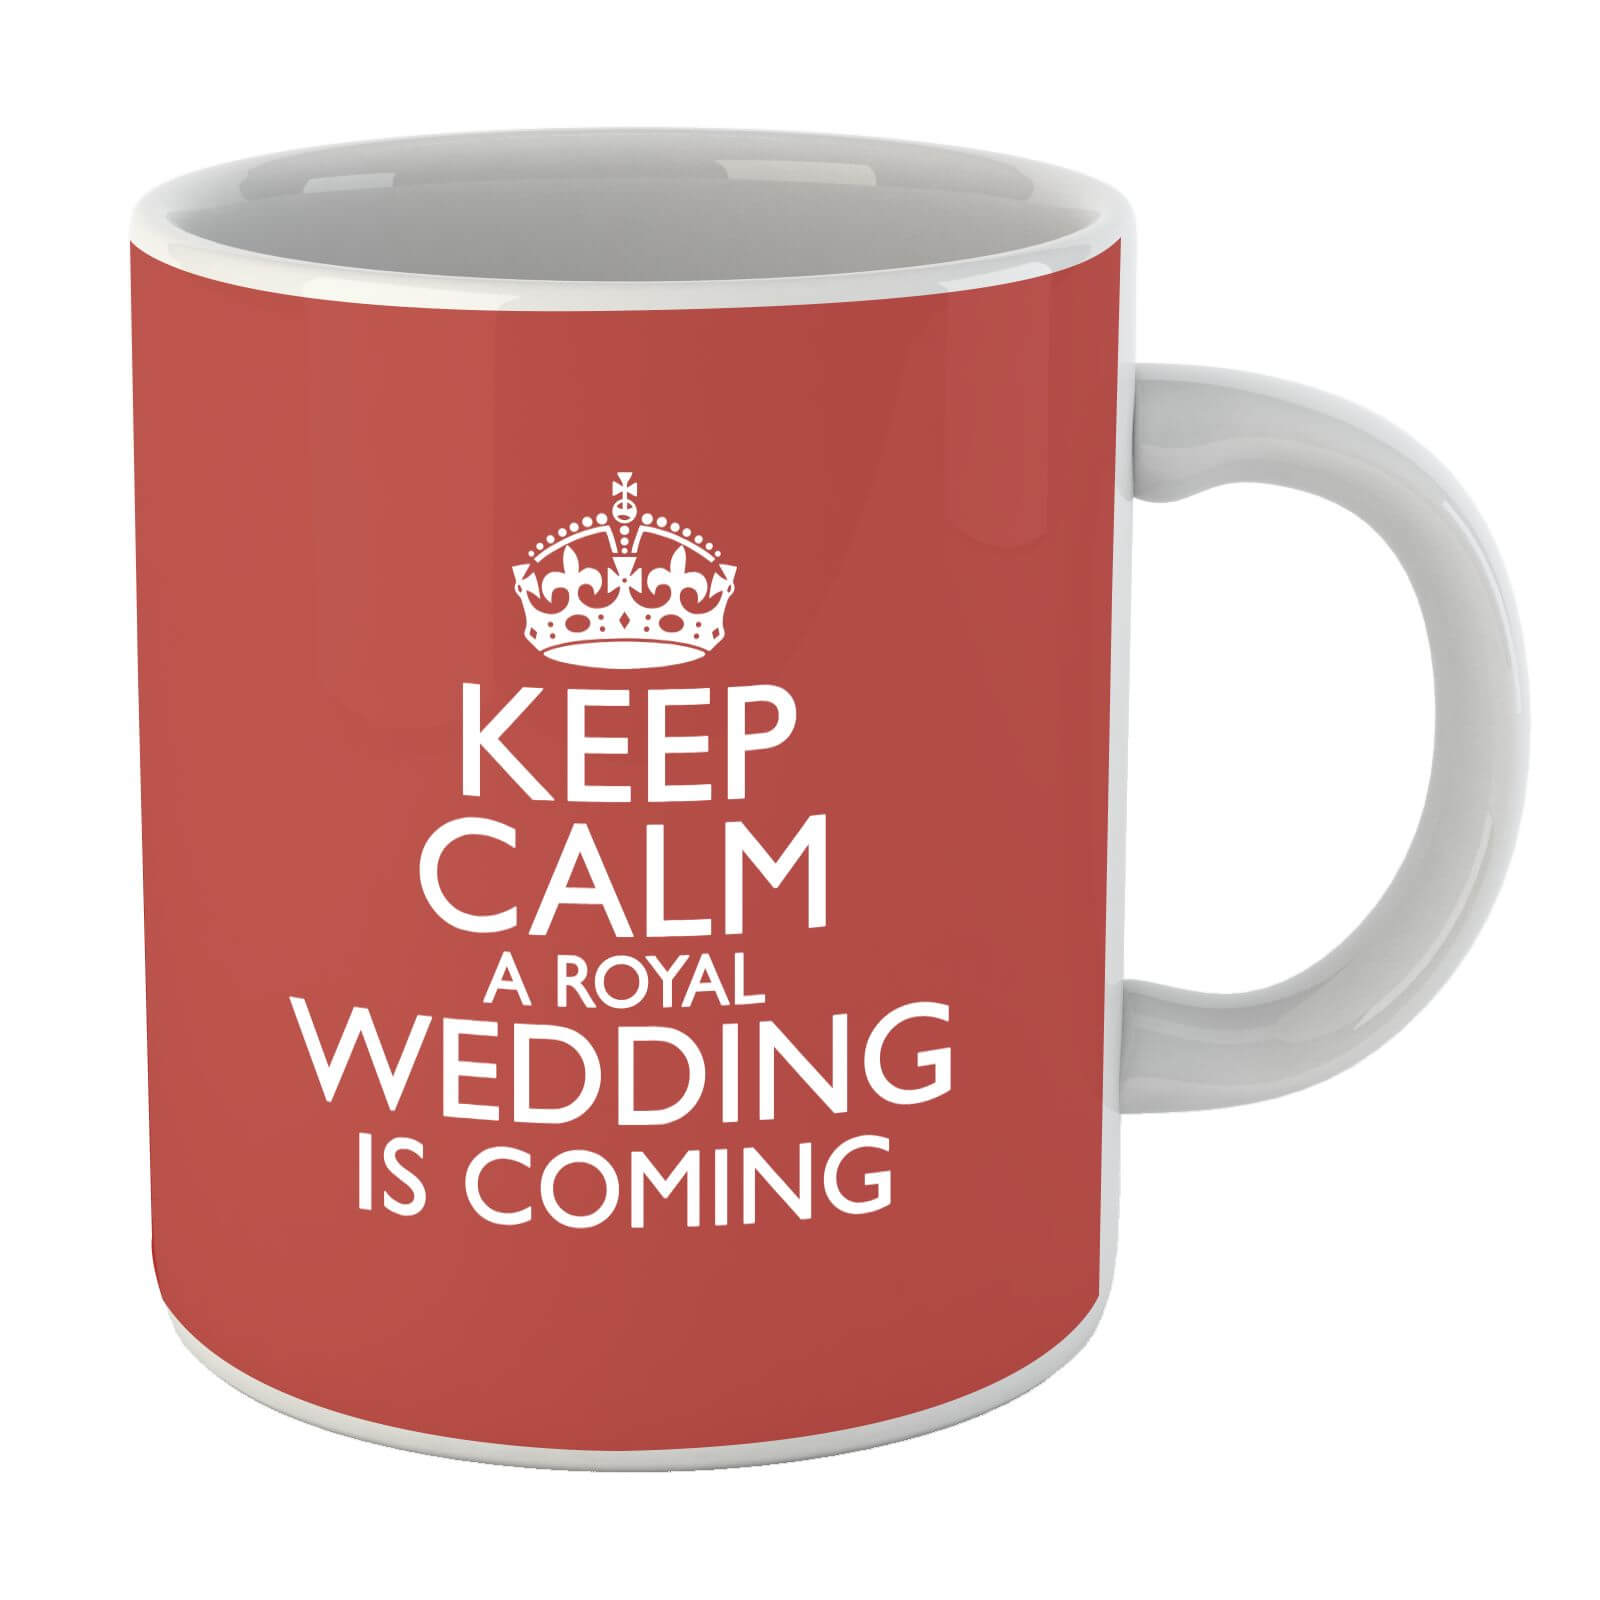 Keep Calm Wedding Coming Mug